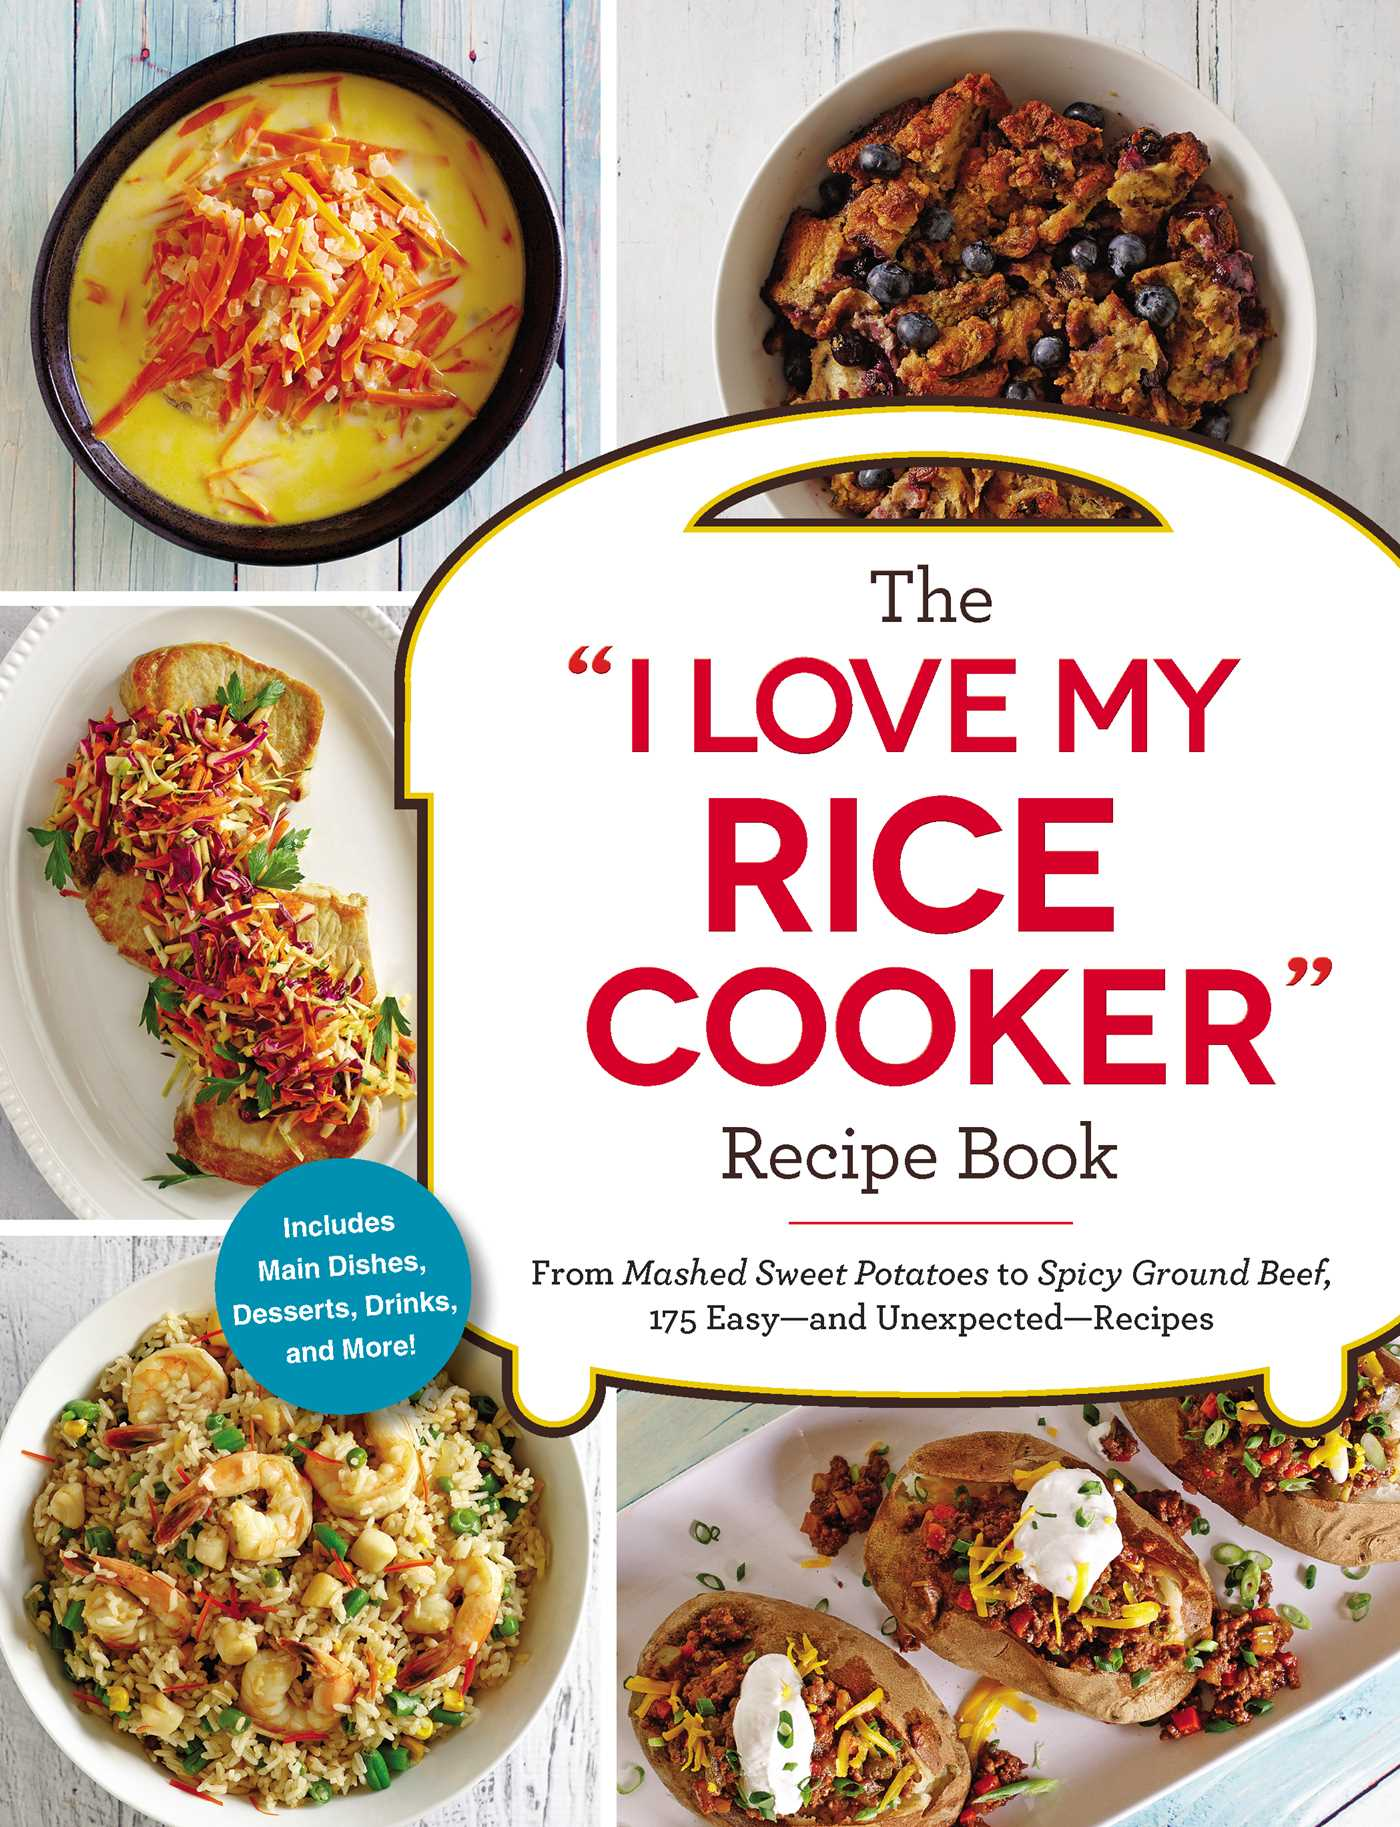 The i love my rice cooker recipe book book by adams media book cover image jpg the i love my rice cooker recipe book forumfinder Image collections